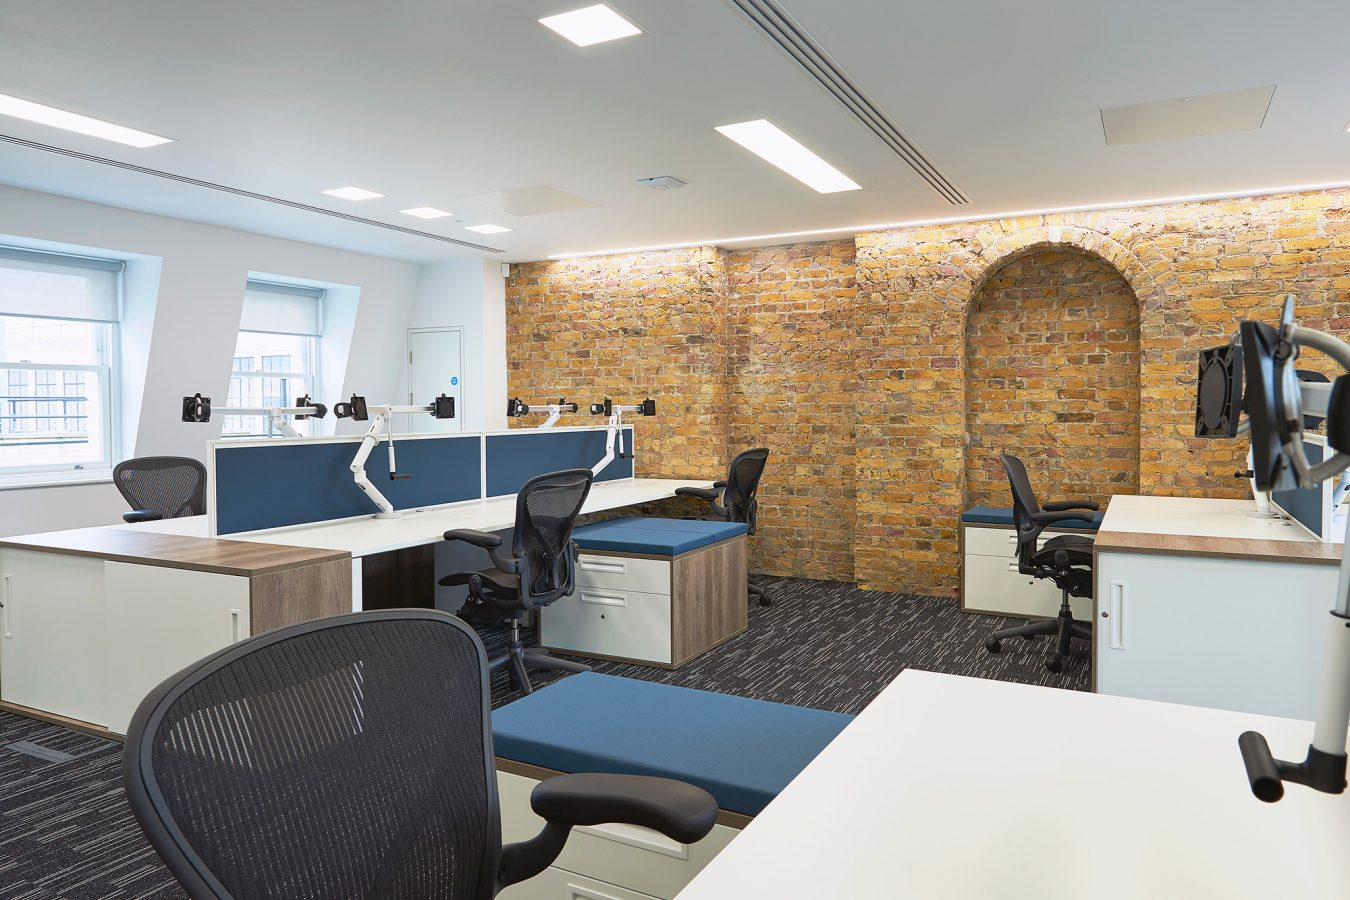 Modern office furniture ideas, exposed brickwork, industrial style design.